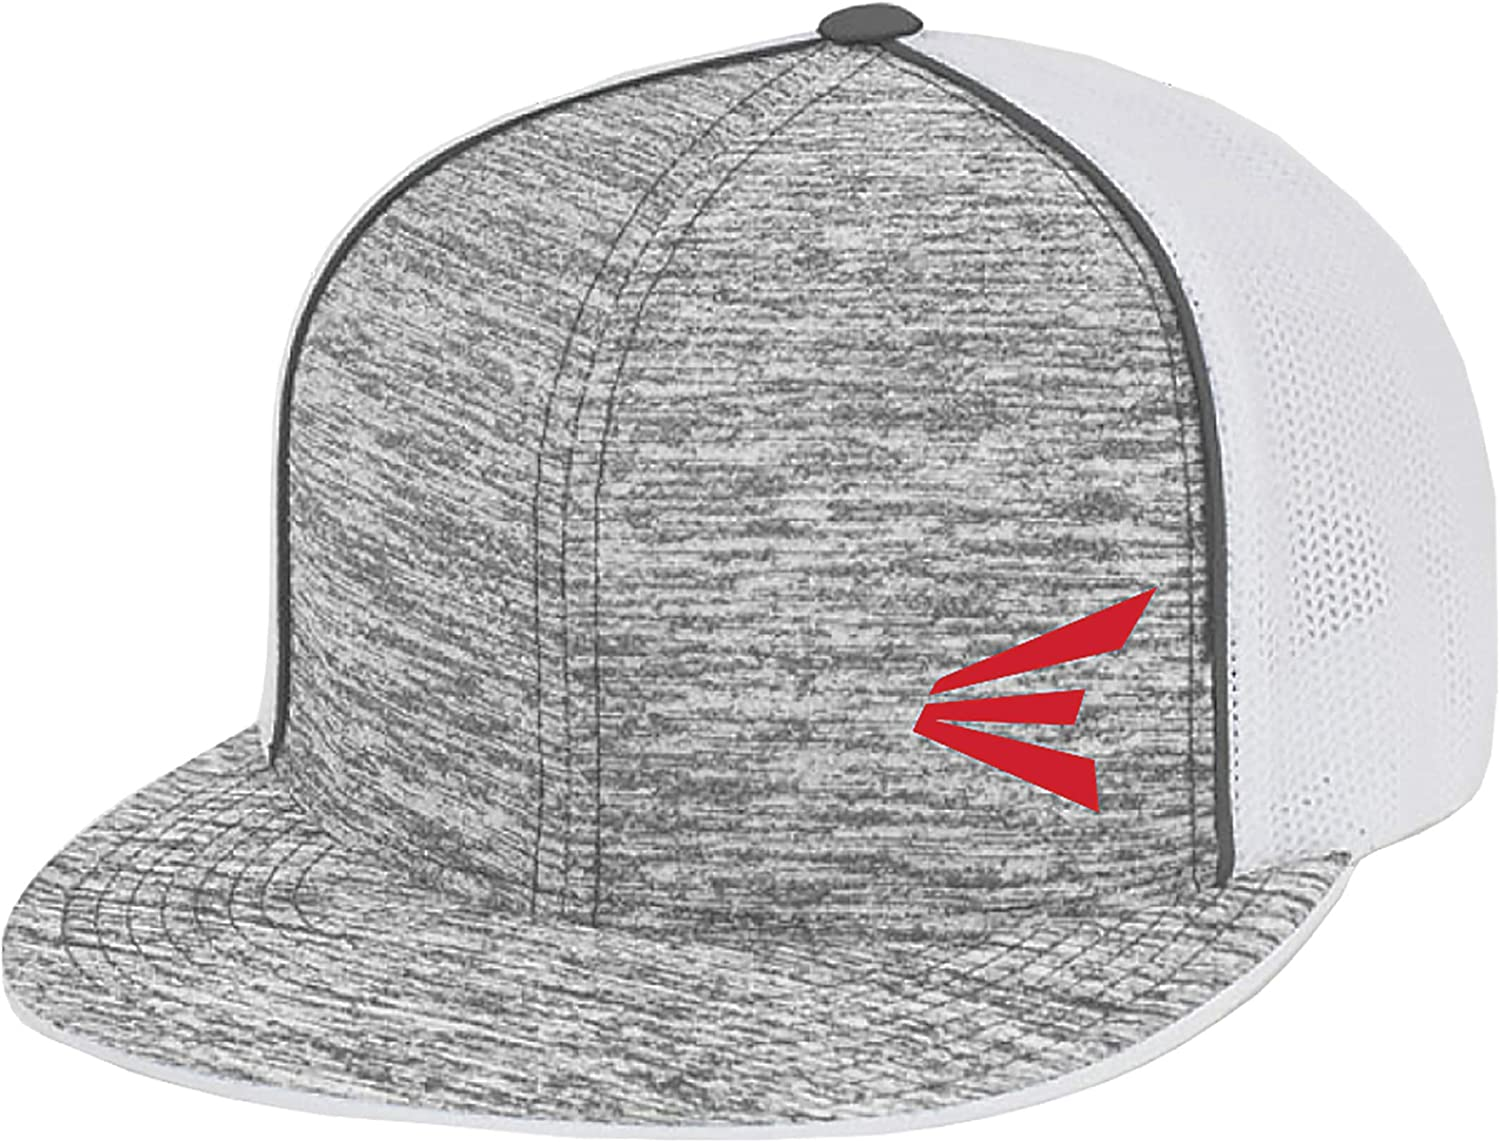 EASTON HEATHERED Baseball Cap, Flexfit Elastic Stretch Fit Fitted Sizing